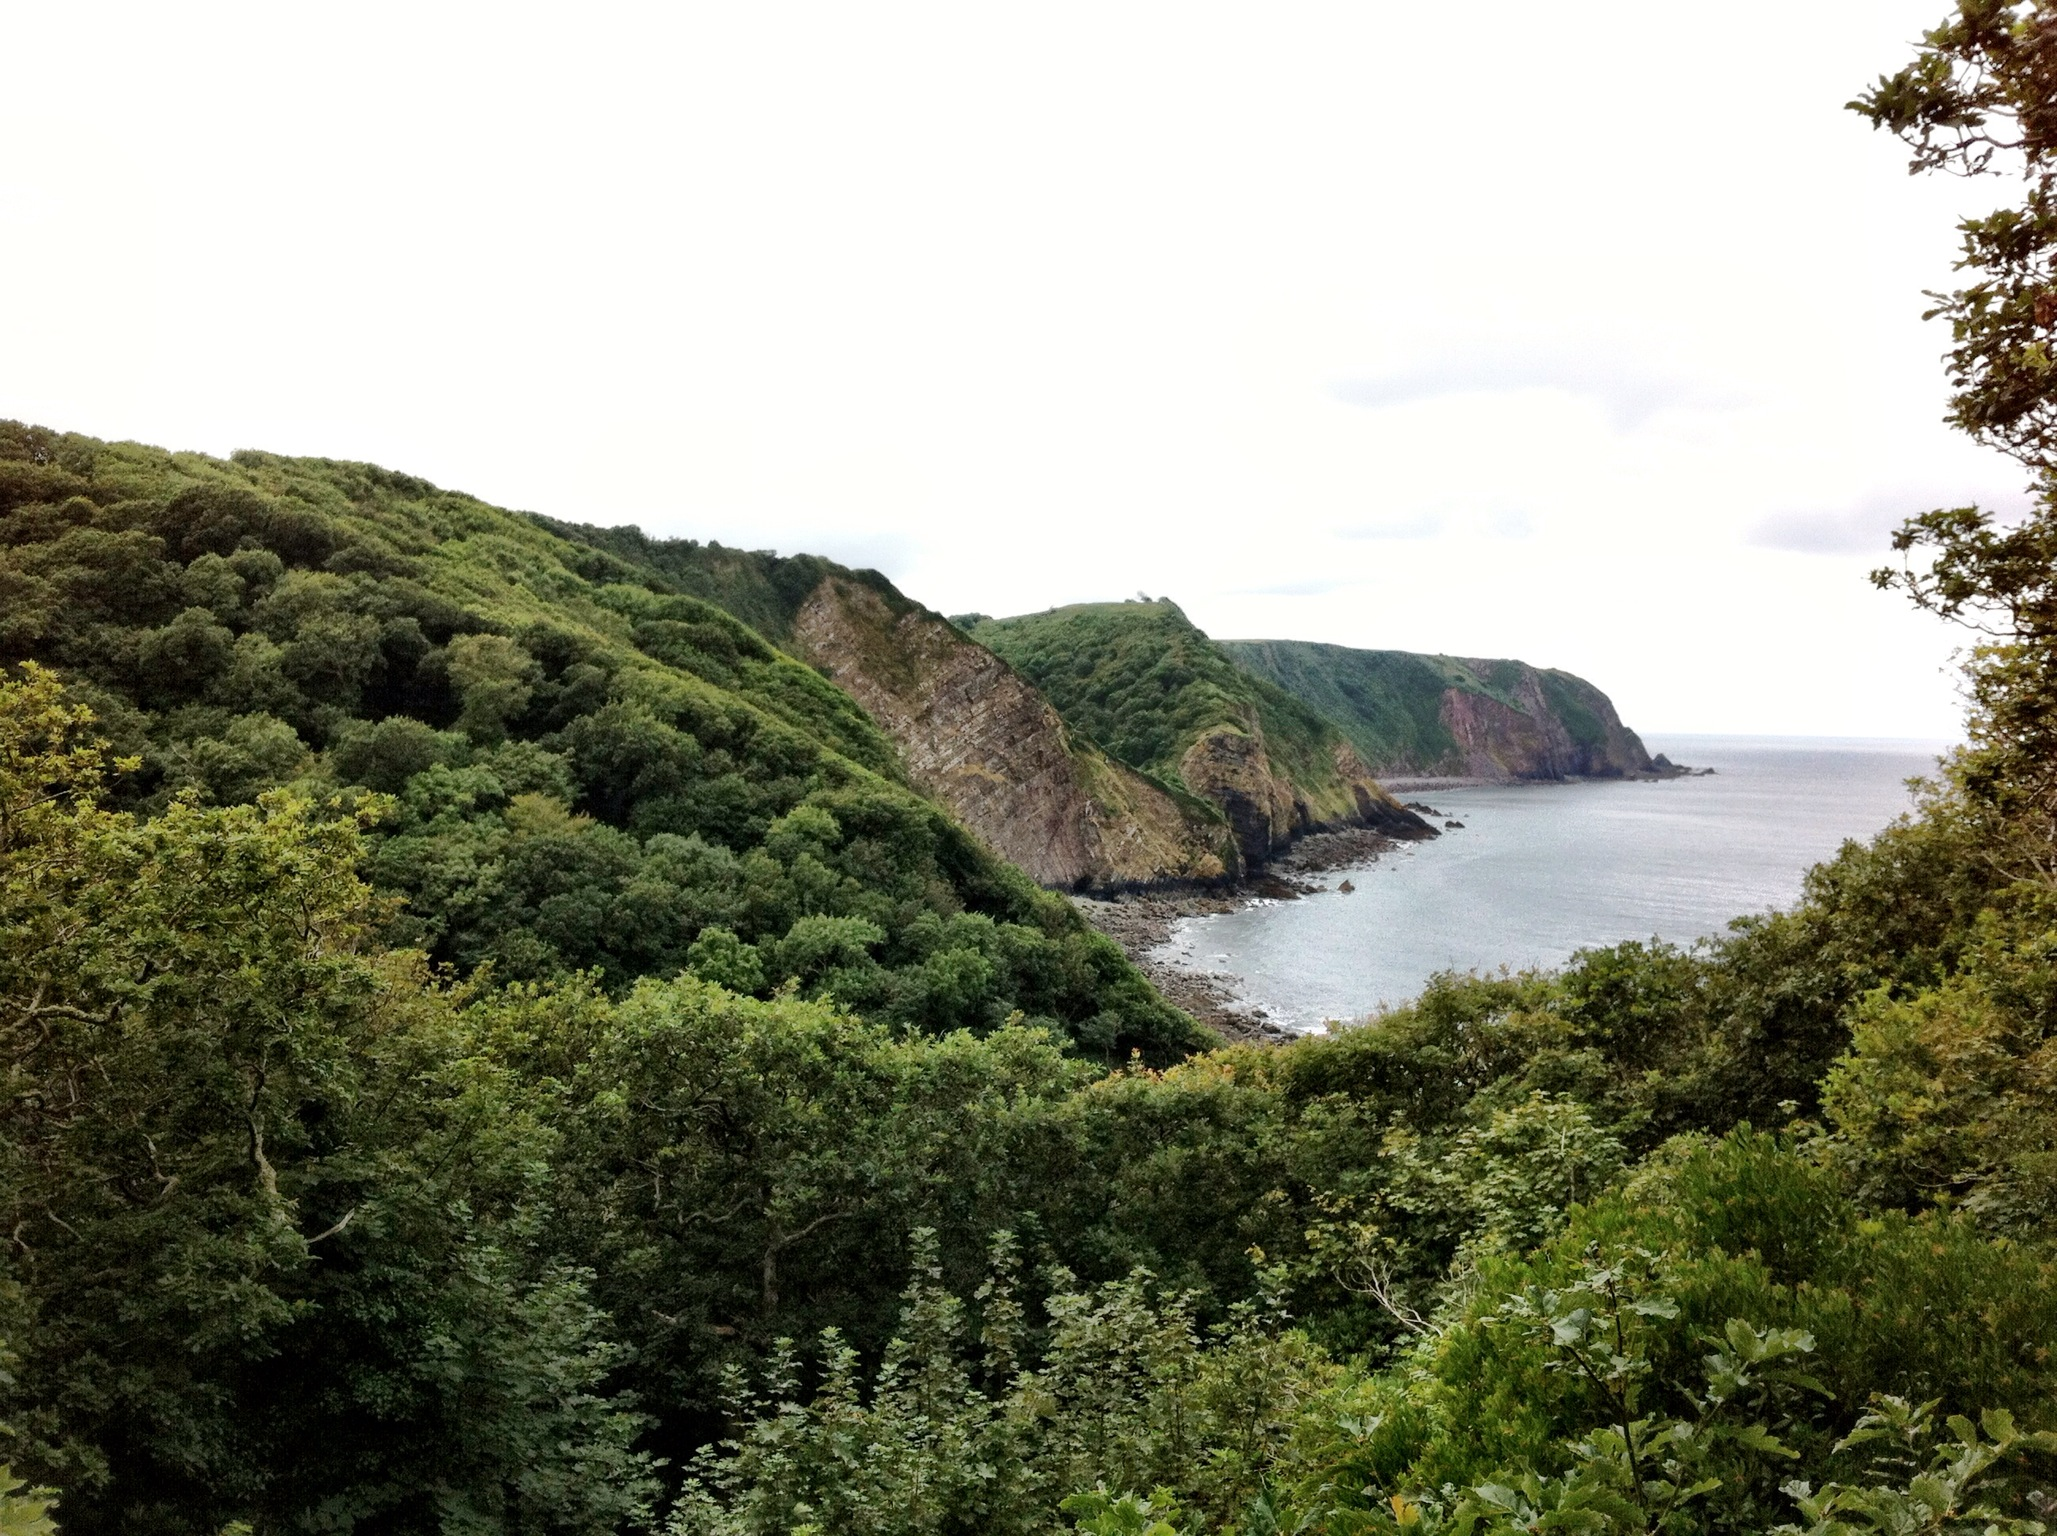 SWCP – Buck's Mills to Hartland Point